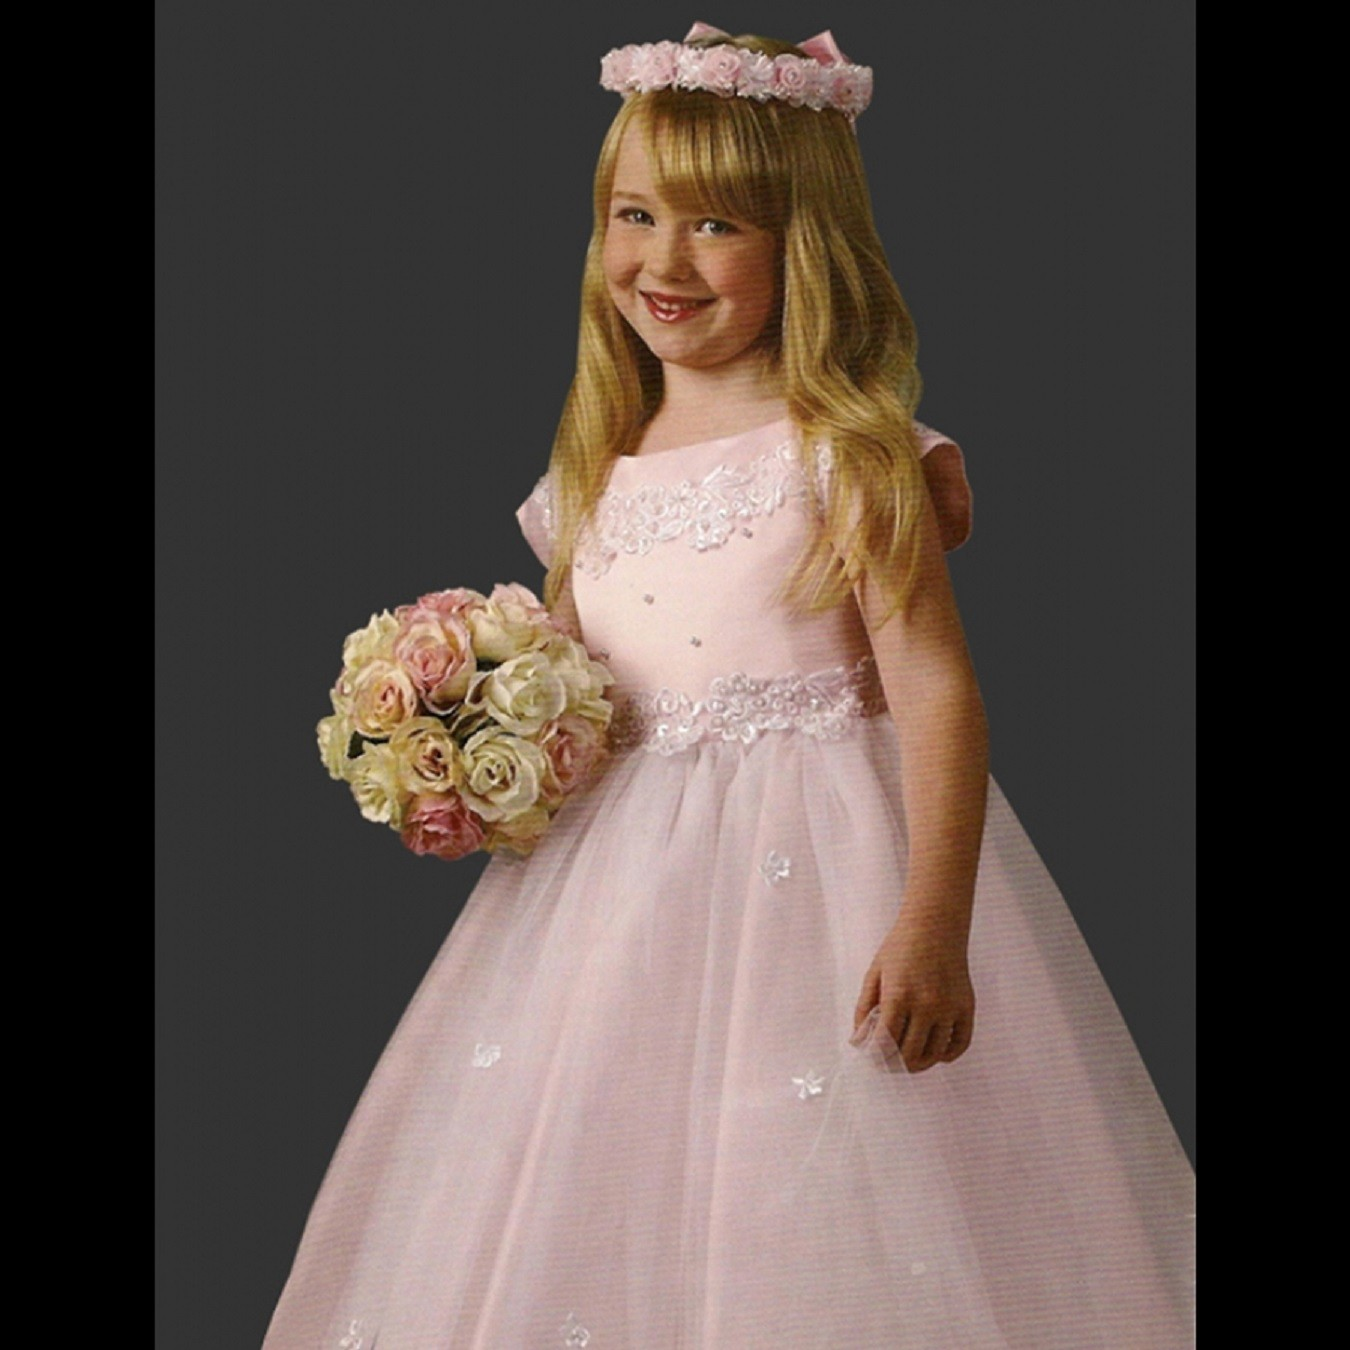 Girl Flower dresses for less uk pictures exclusive photo